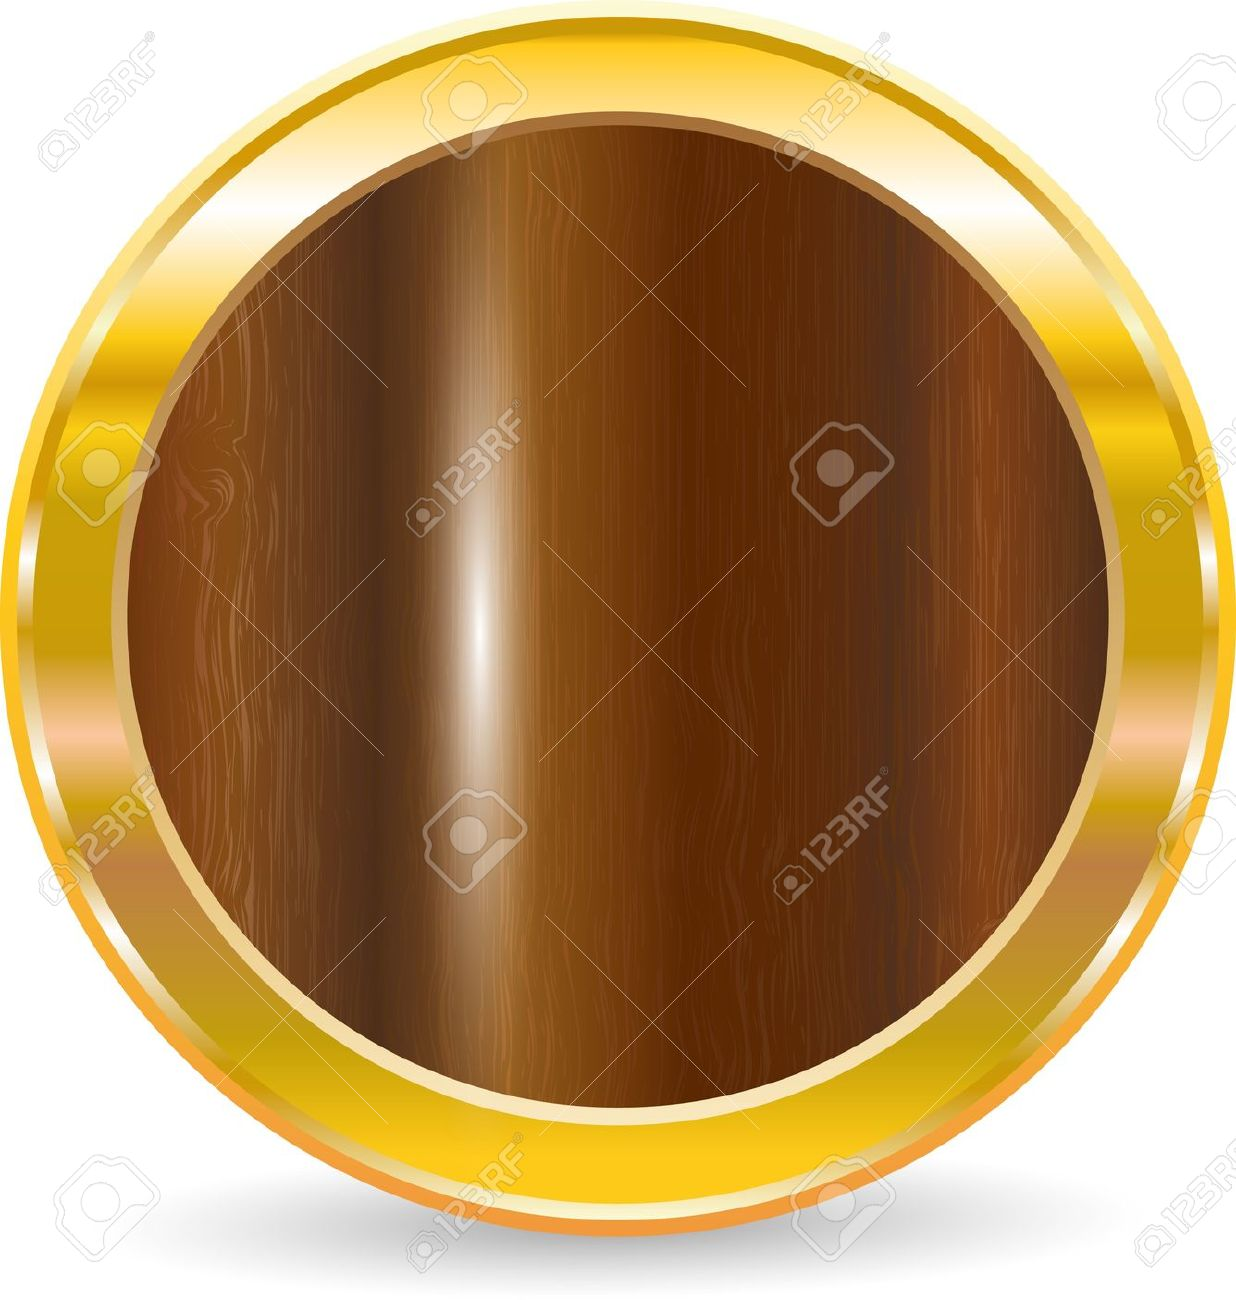 Gold Circle Frame With Wood Texture, Vector Illustration Royalty.